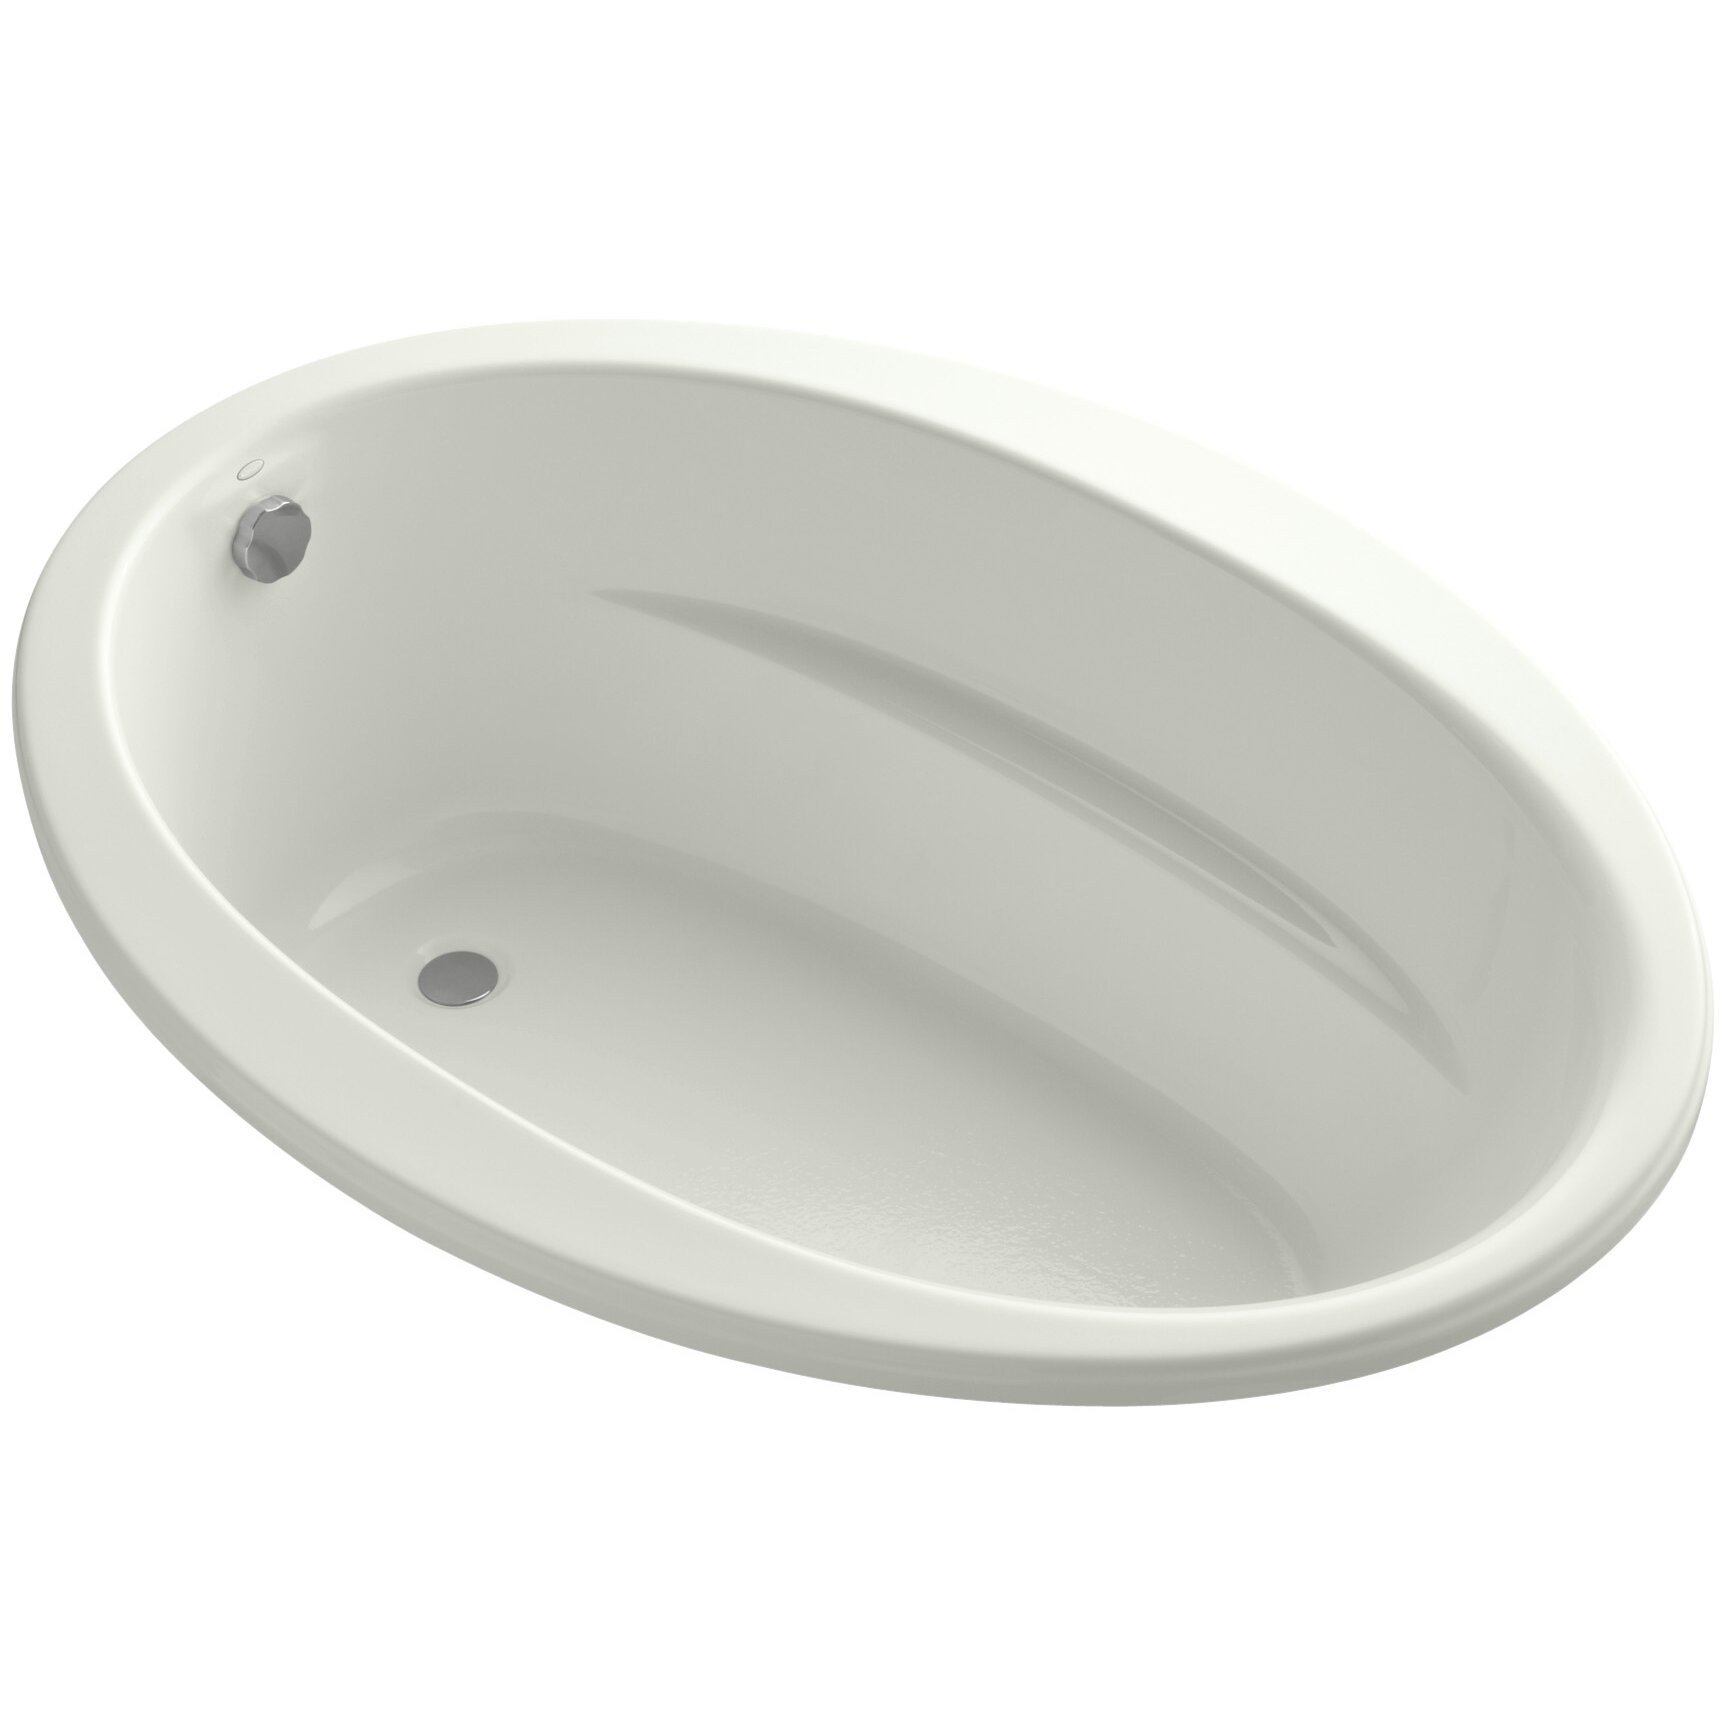 bathroom fixtures kohler part k 1163 w1 sku koh20430